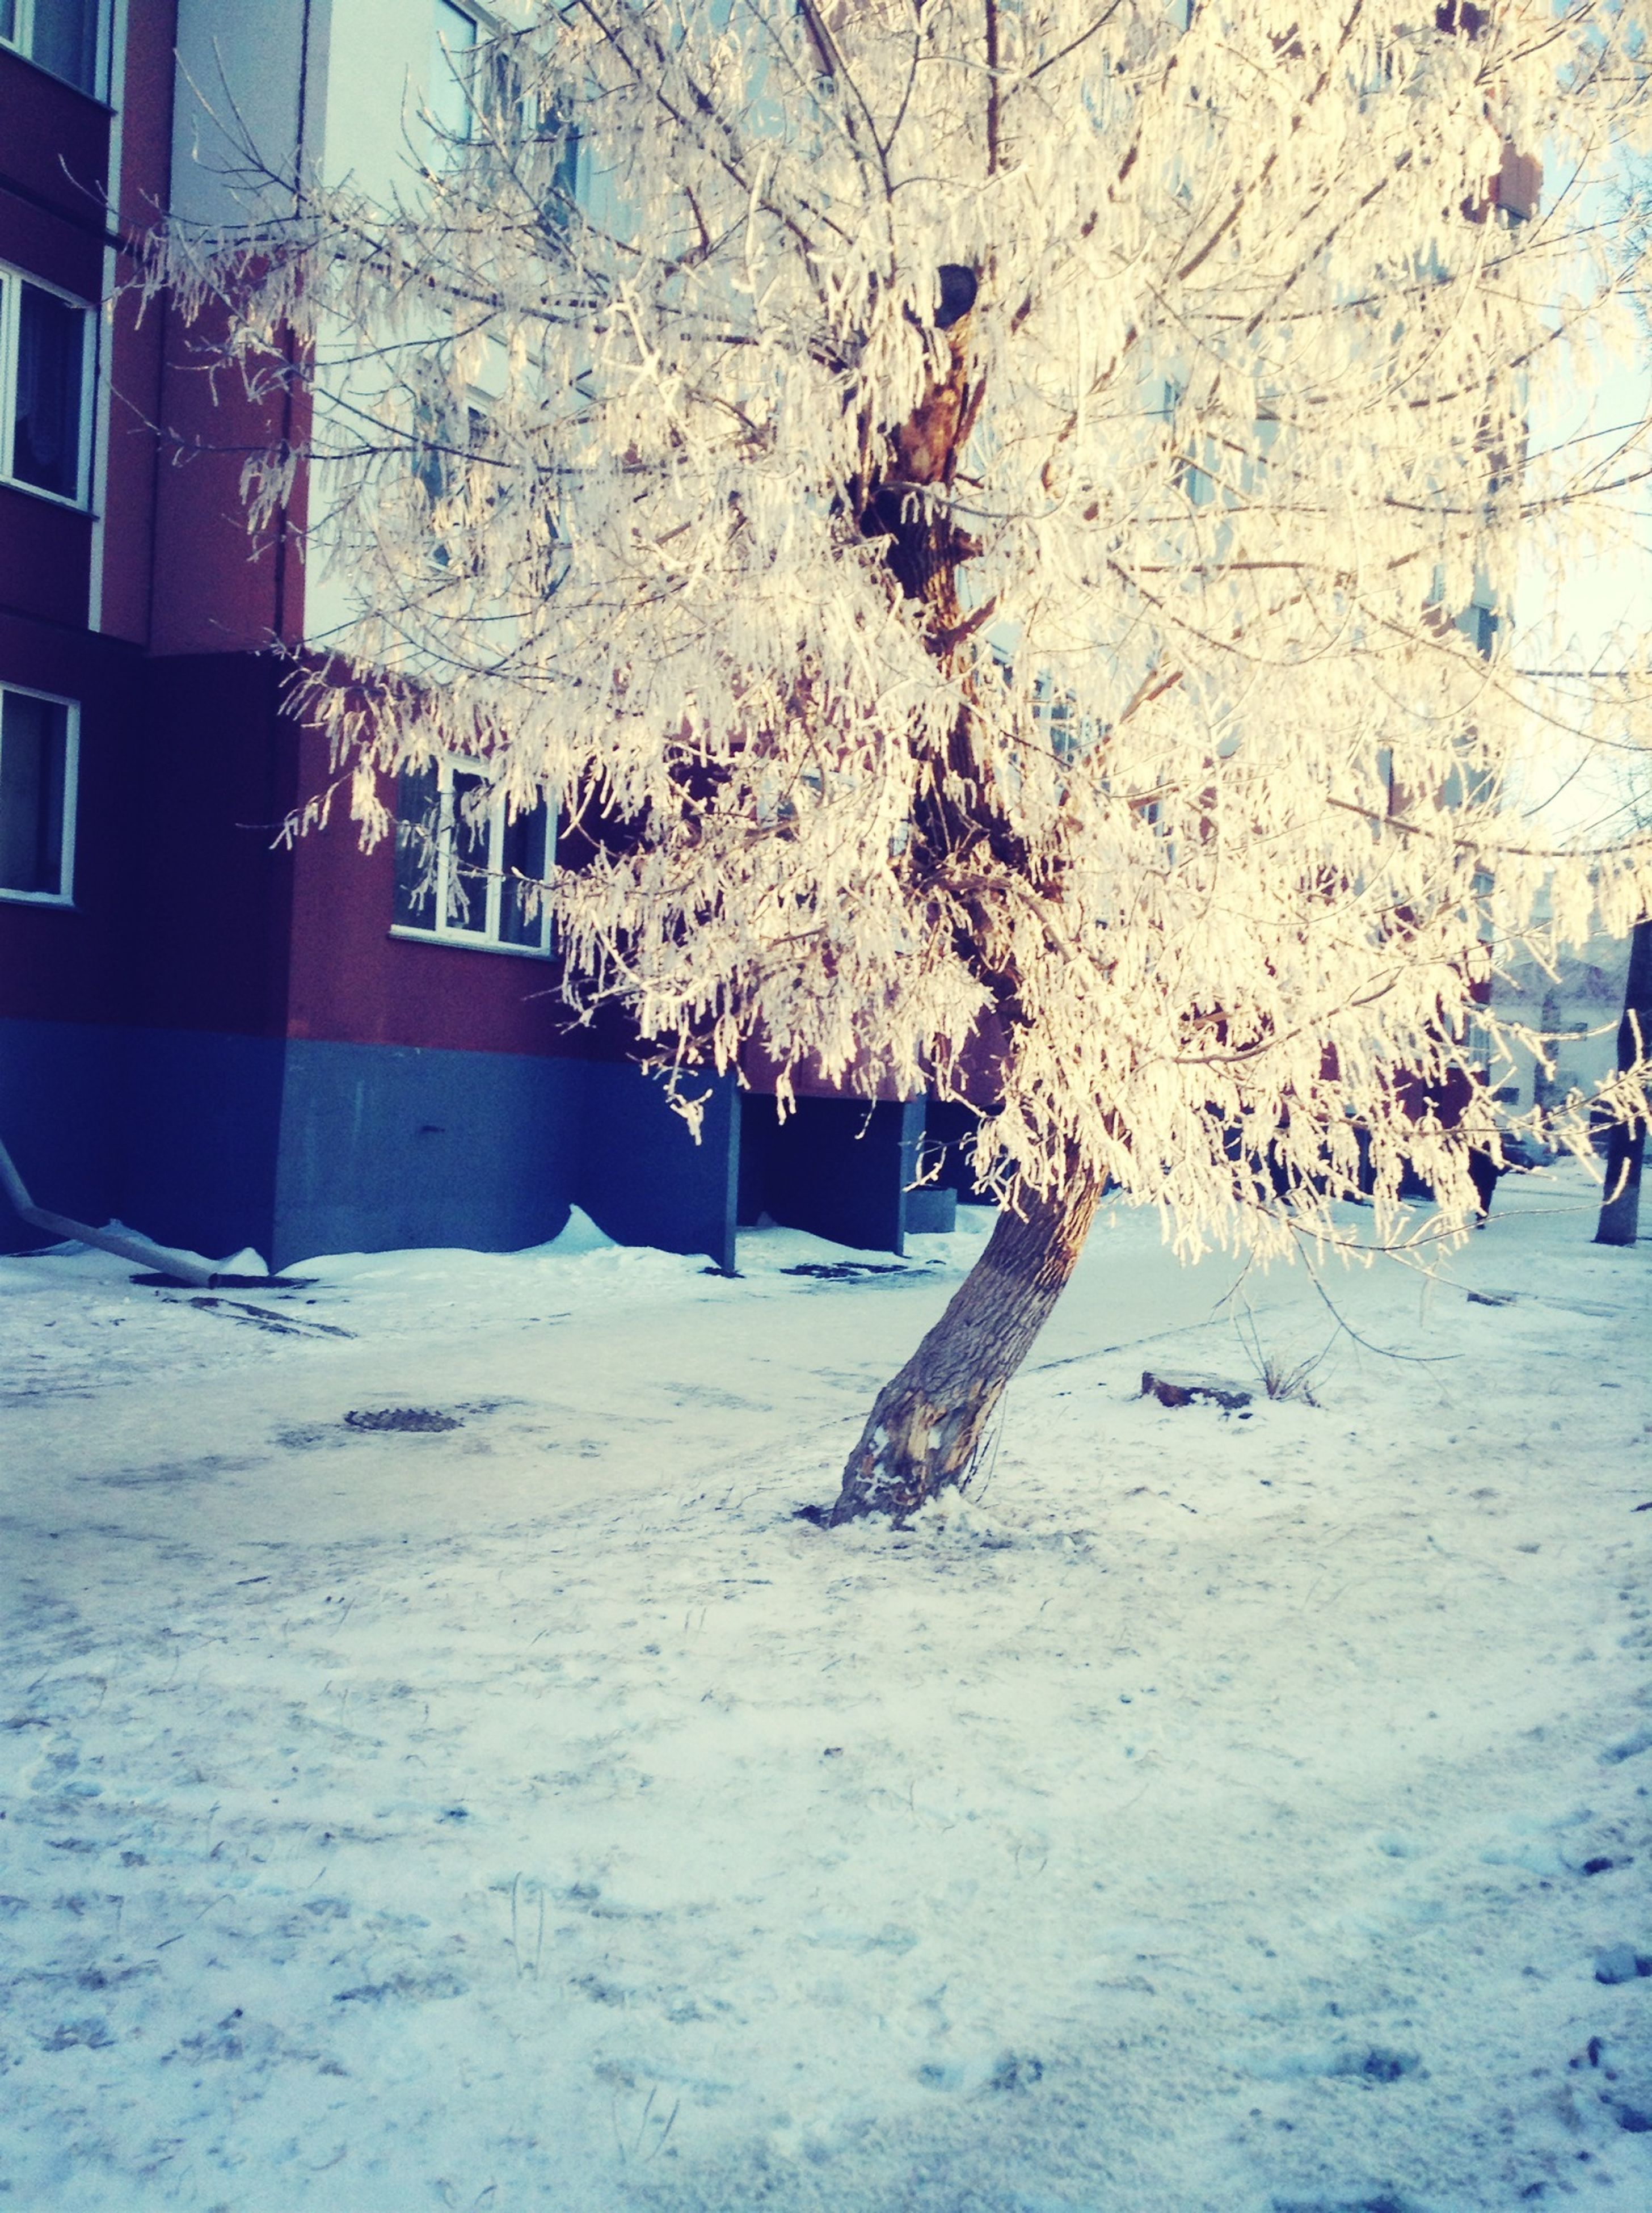 snow, tree, winter, cold temperature, built structure, building exterior, architecture, season, bare tree, sunlight, branch, house, day, nature, tree trunk, covering, outdoors, white color, weather, shadow